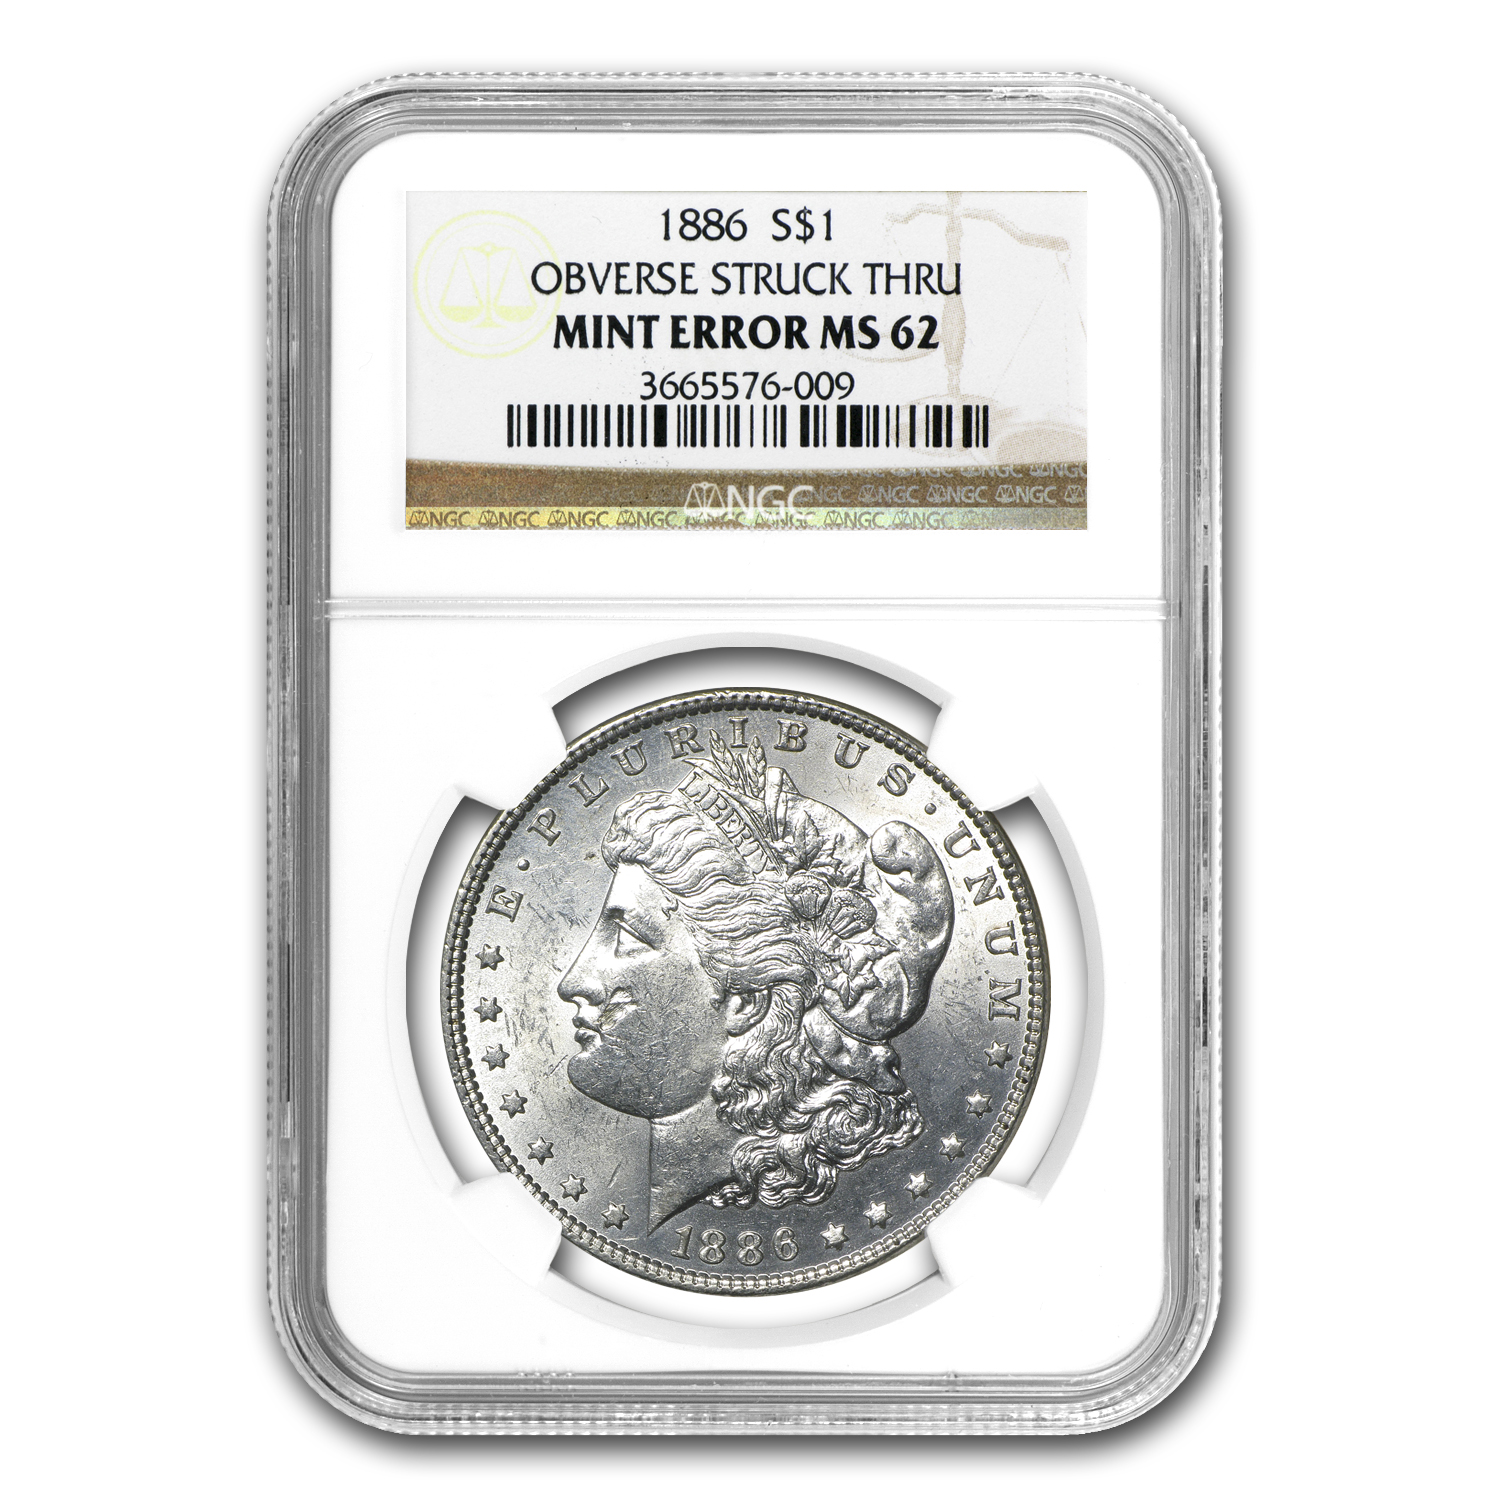 1886 Morgan Dollar MS-62 NGC Obverse Struck Thru Mint Error